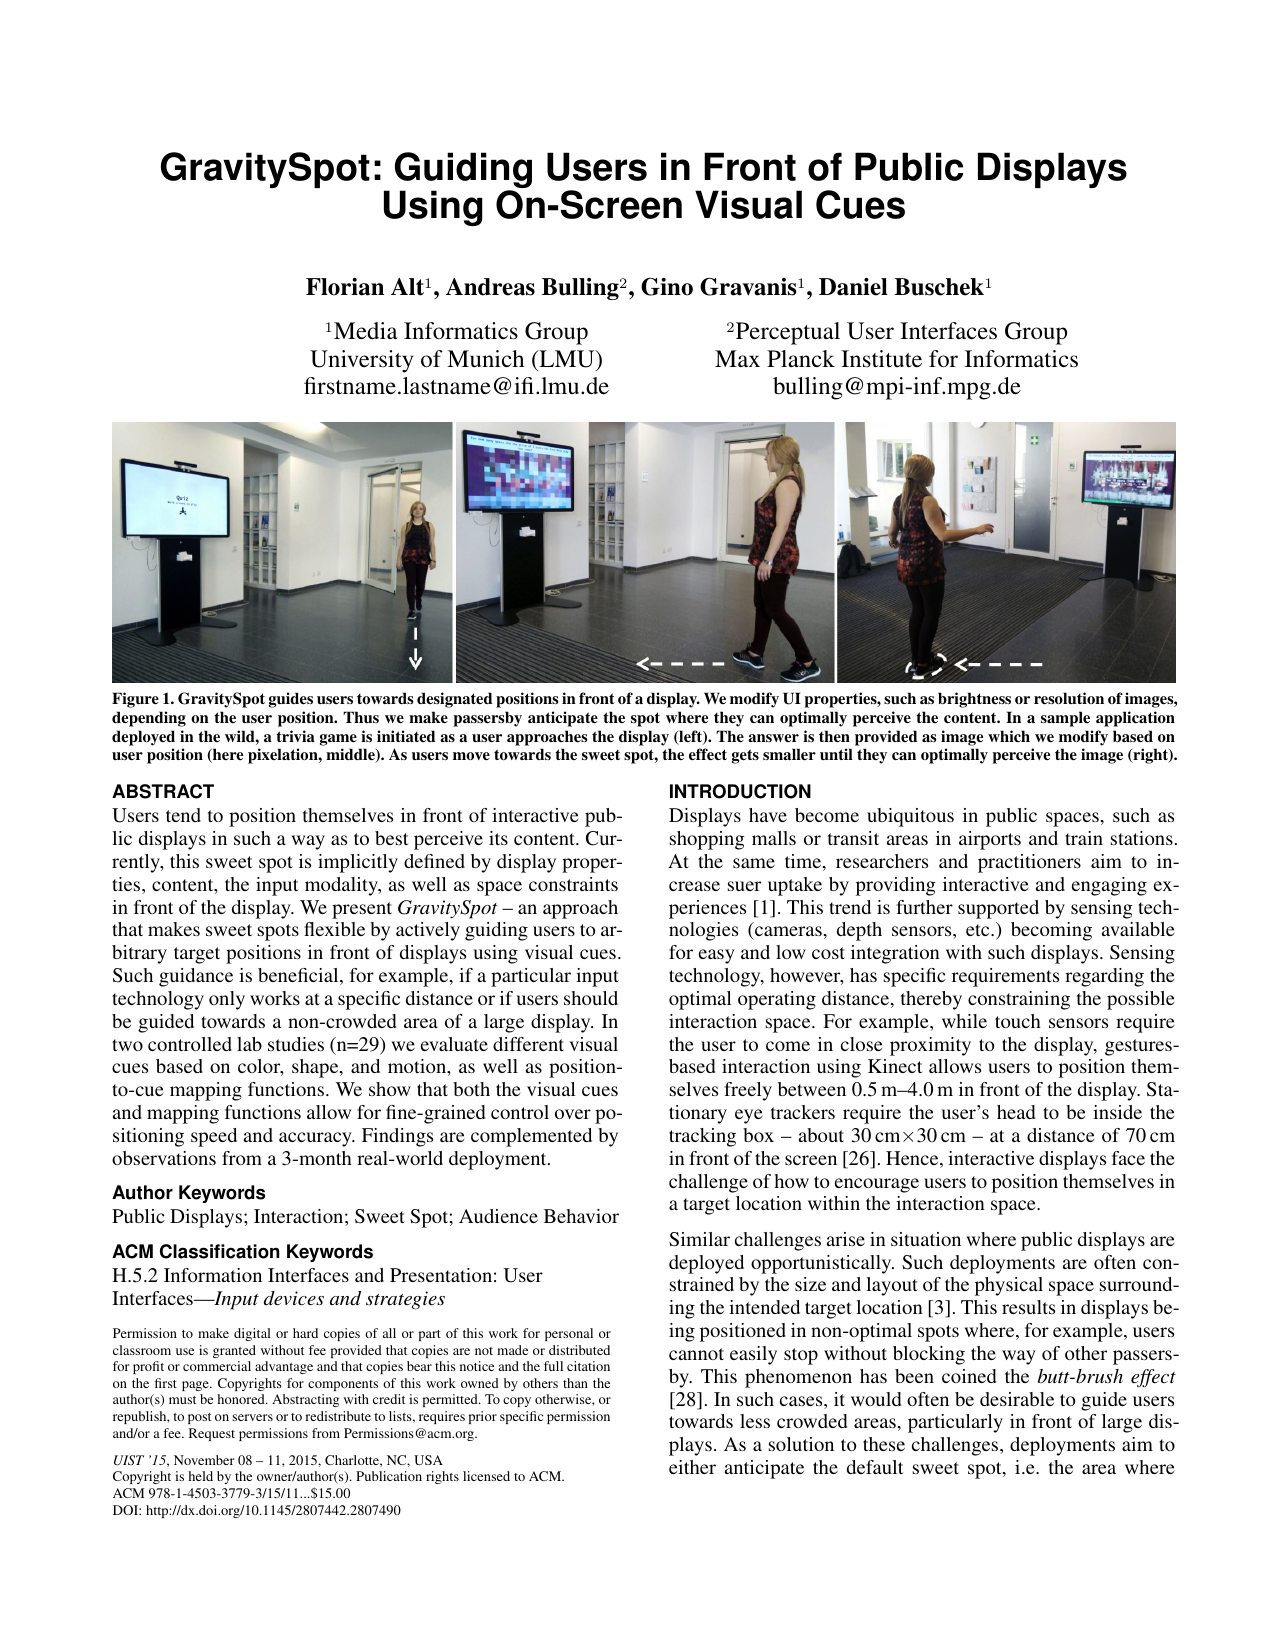 GravitySpot: Guiding Users in Front of Public Displays Using On-Screen Visual Cues